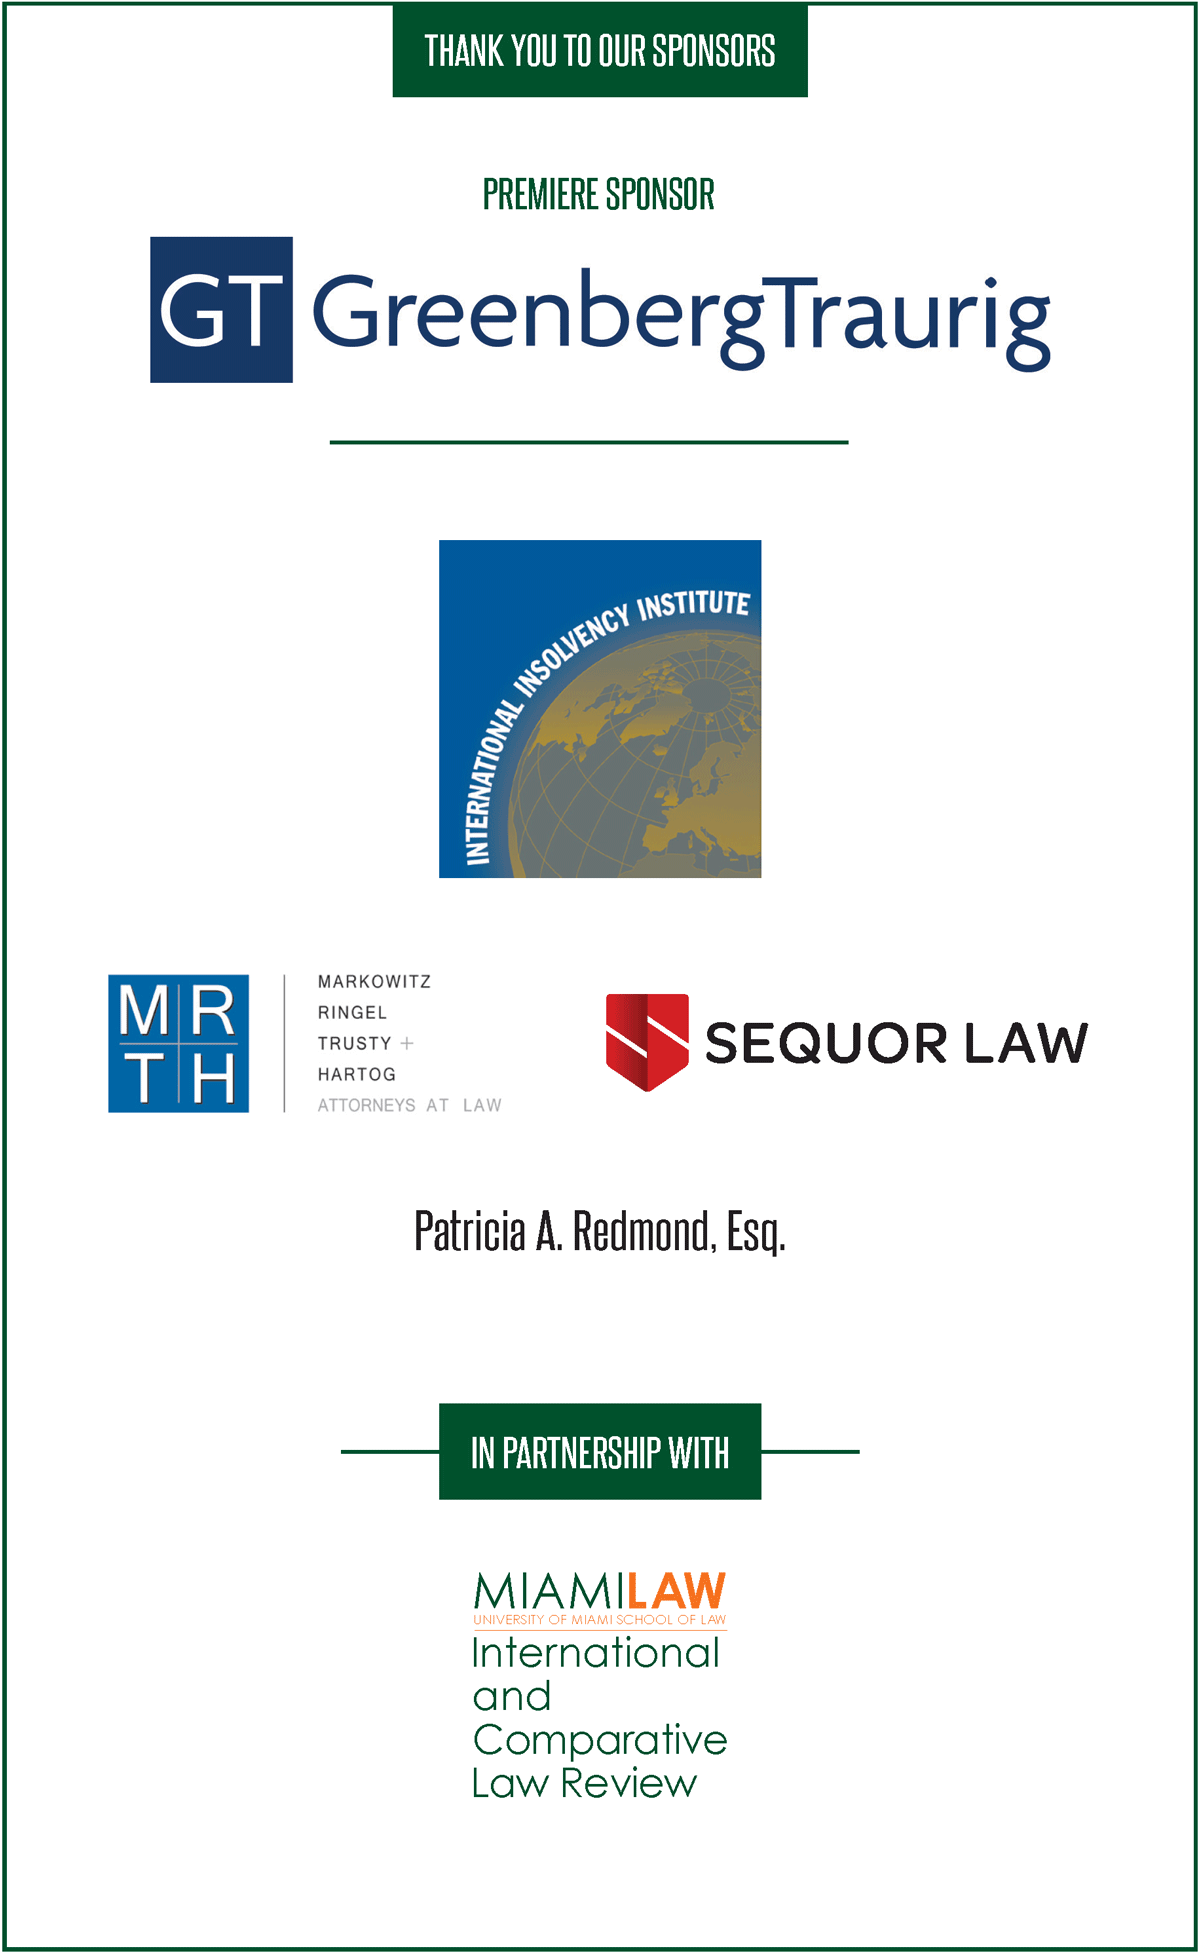 Sponsors: Greenber Traurig (premier), International Insolvency Institute, MRTH, Patricia A. Redmond, Esq., Sequor Law. In Partnership with Miami Law International and Comparative Law Reivew